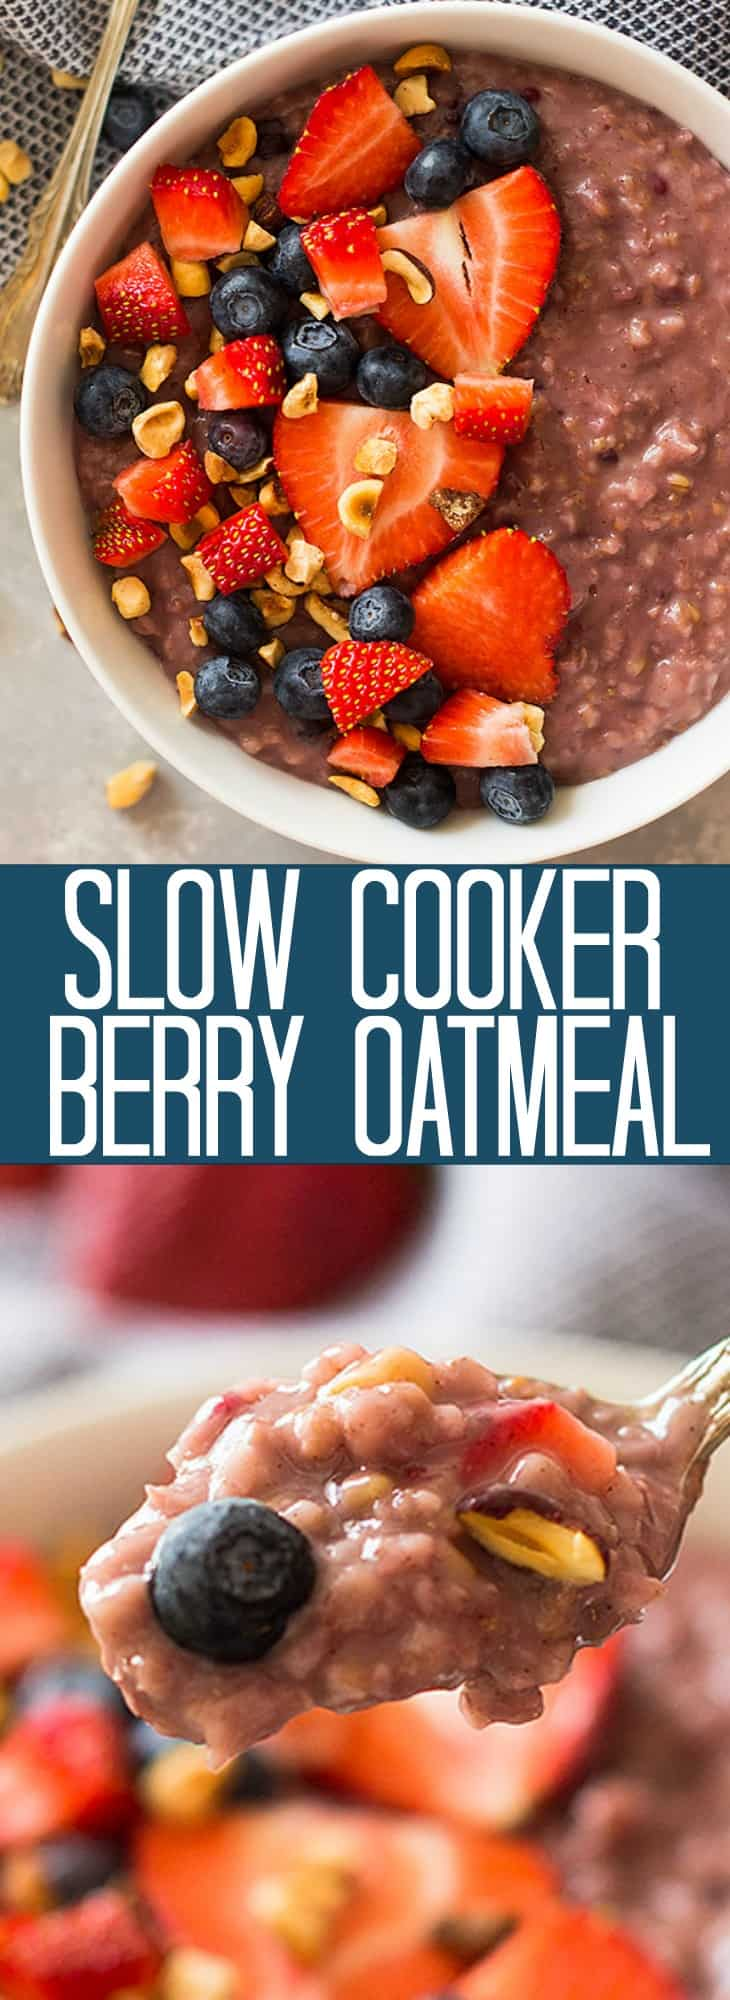 Slow Cooker Berry Oatmeal is a wonderfully hearty breakfast using steel cut oats, frozen mixed berries and your trusty crockpot! | www.countrysidecravings.com